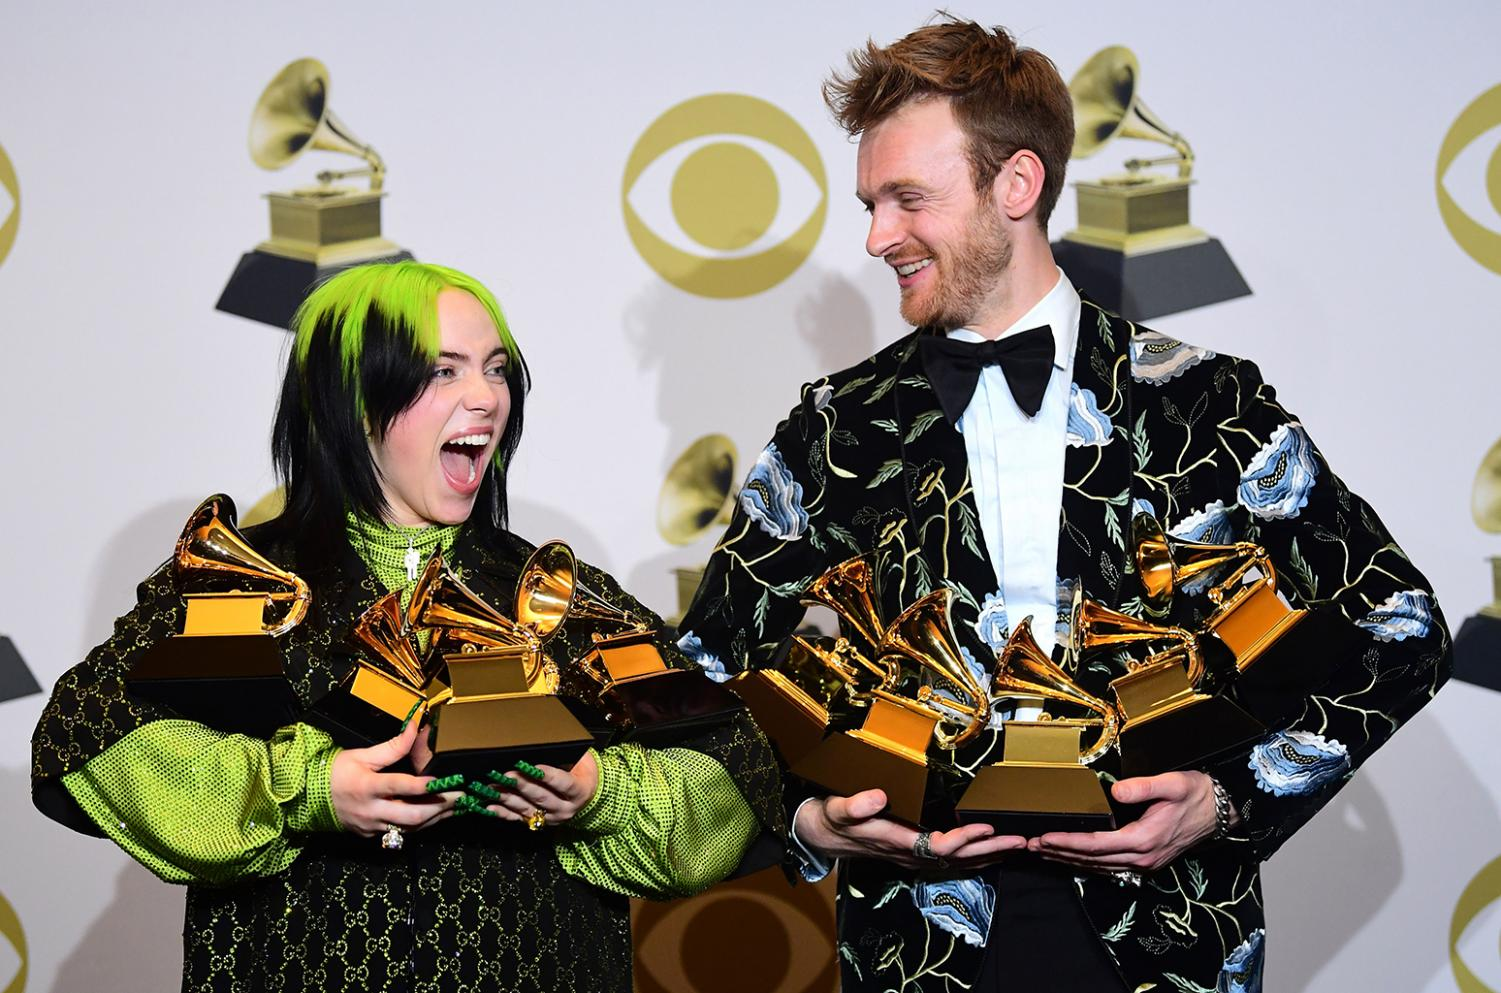 Billie Eilish and her brother and producer Finneas O'Connell holding the 10 total Grammys they won